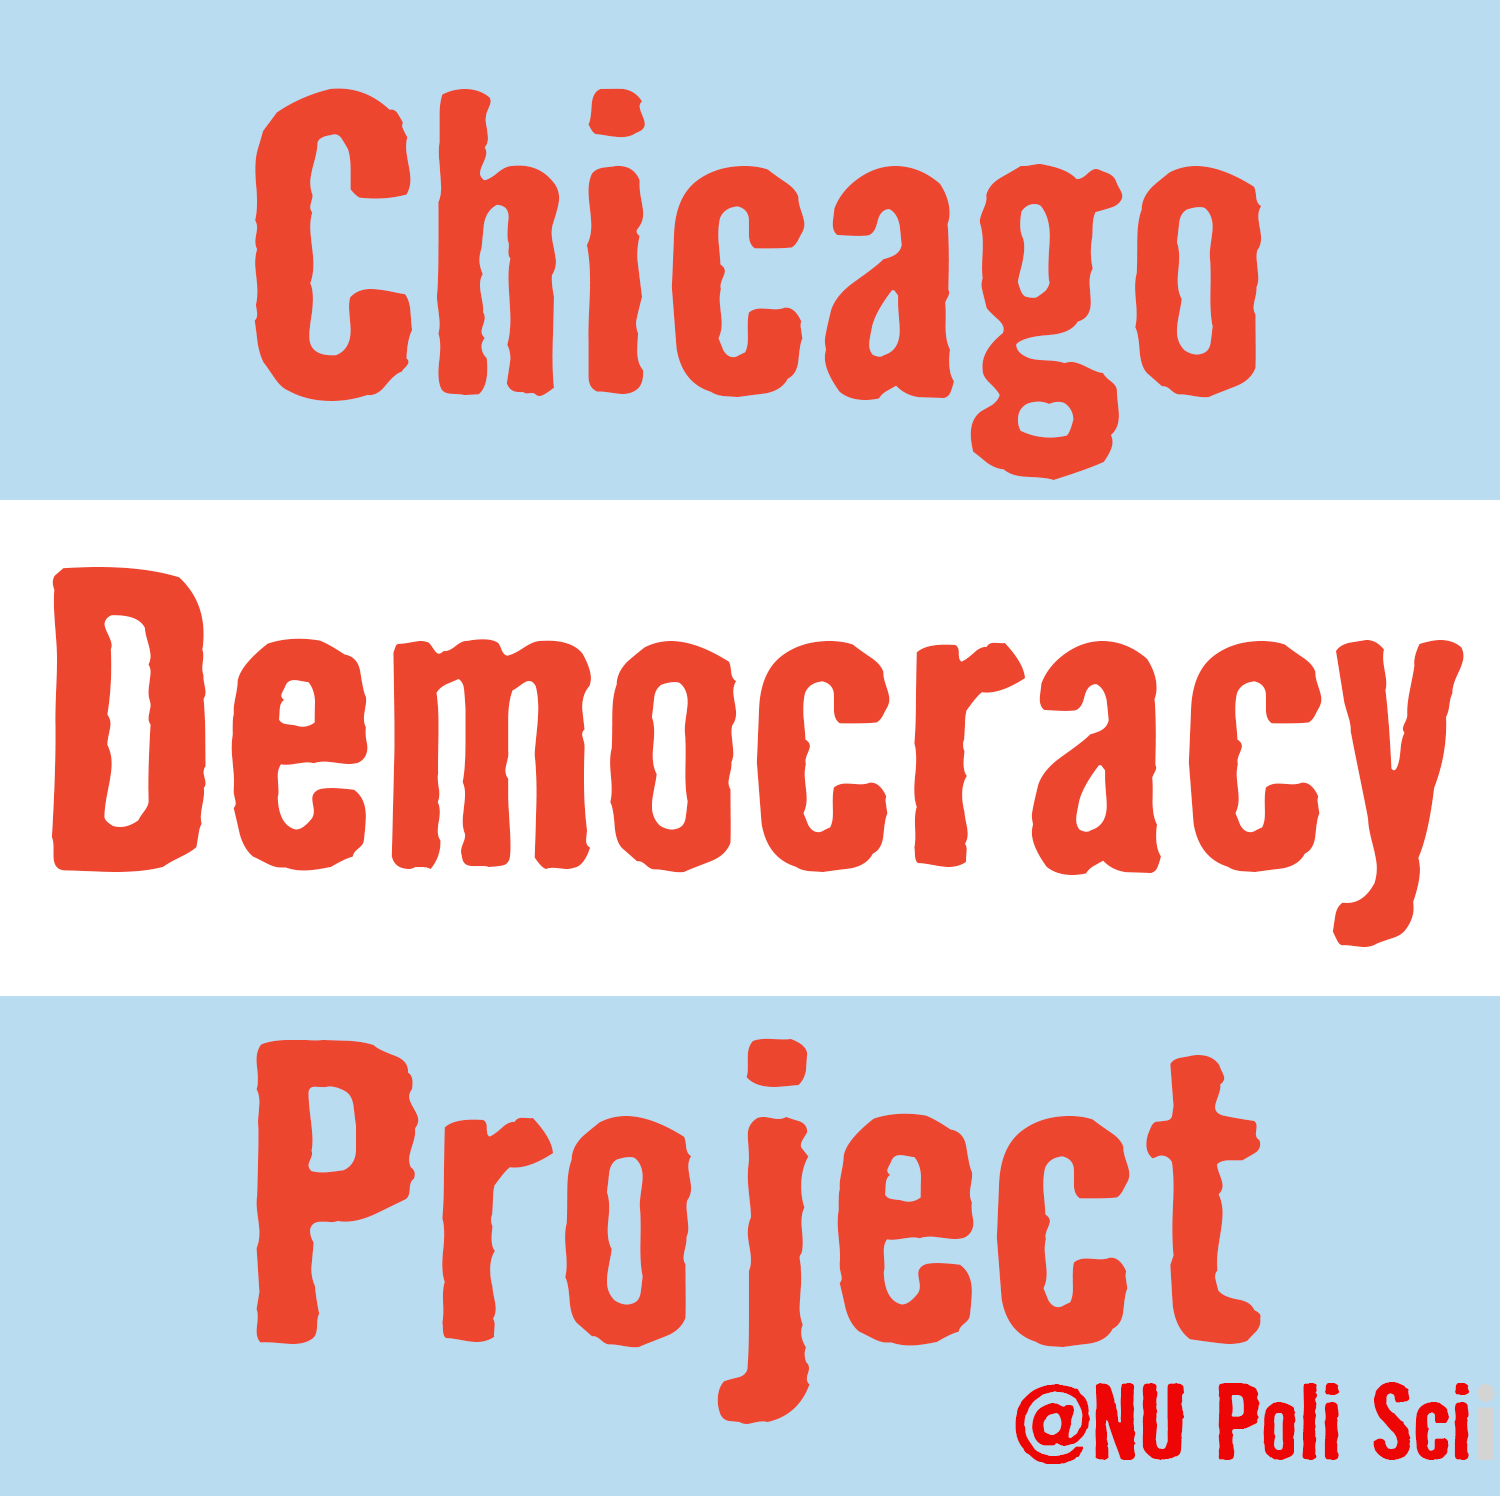 Chicago Democracy Project